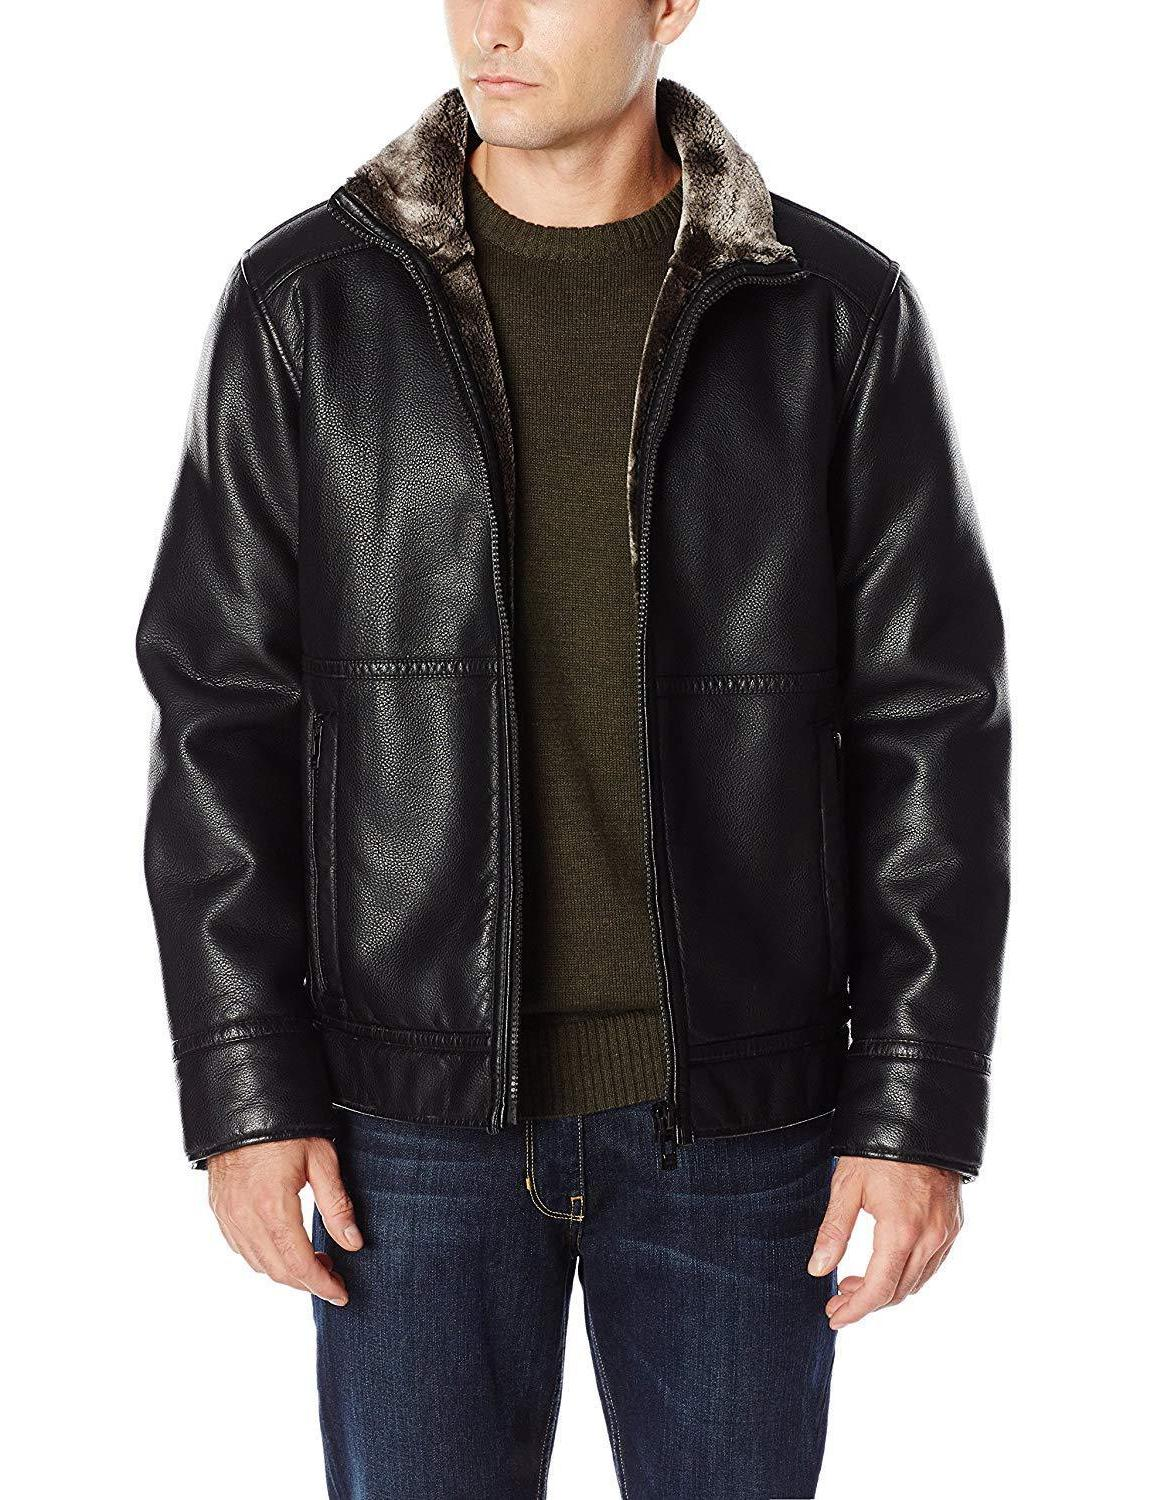 Calvin Klein Mens Black Pebbled Faux Leather Shearling Jacke